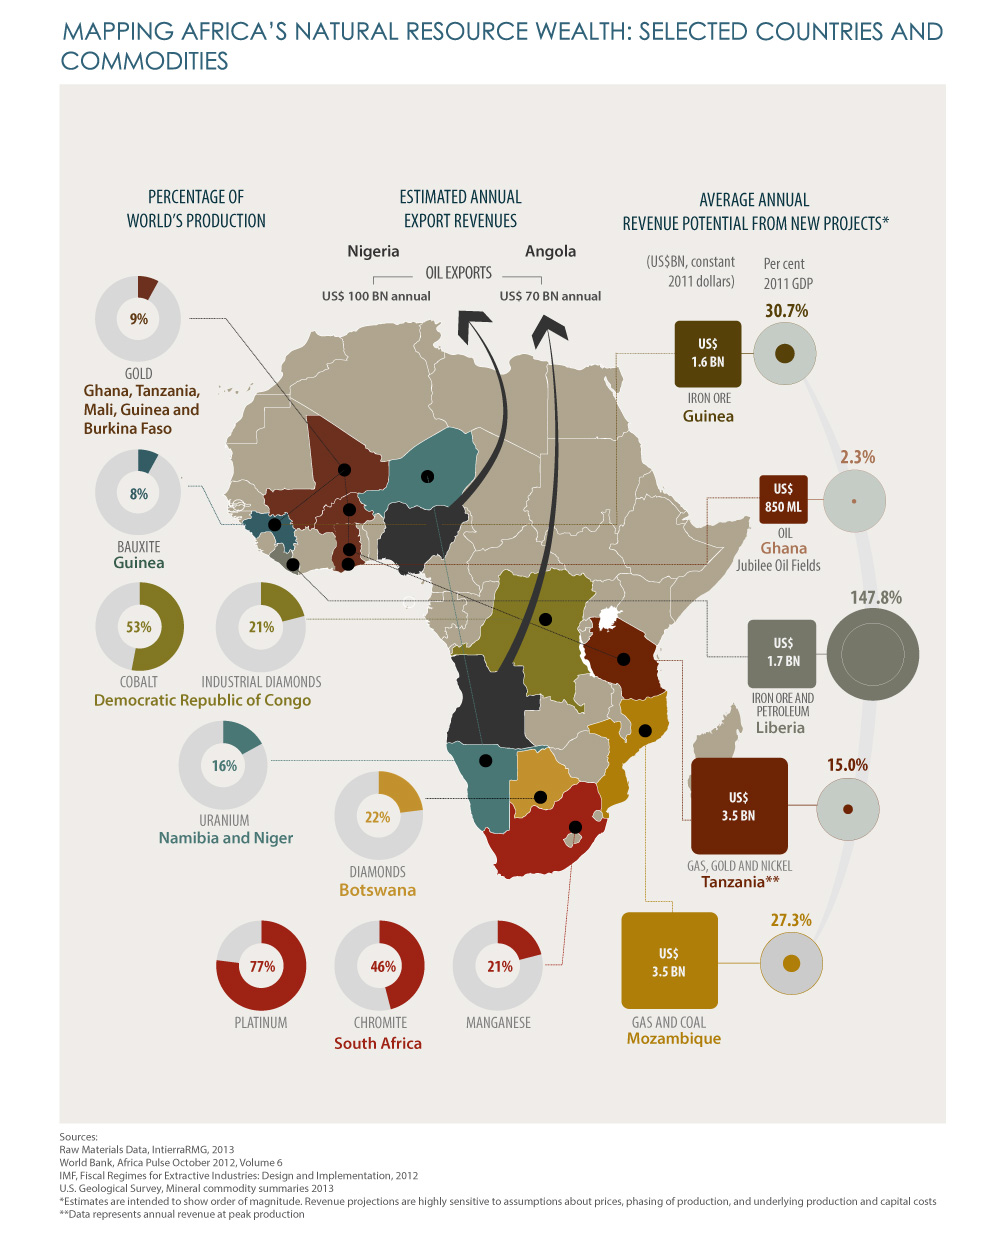 Mapping Africa's natural resource wealth